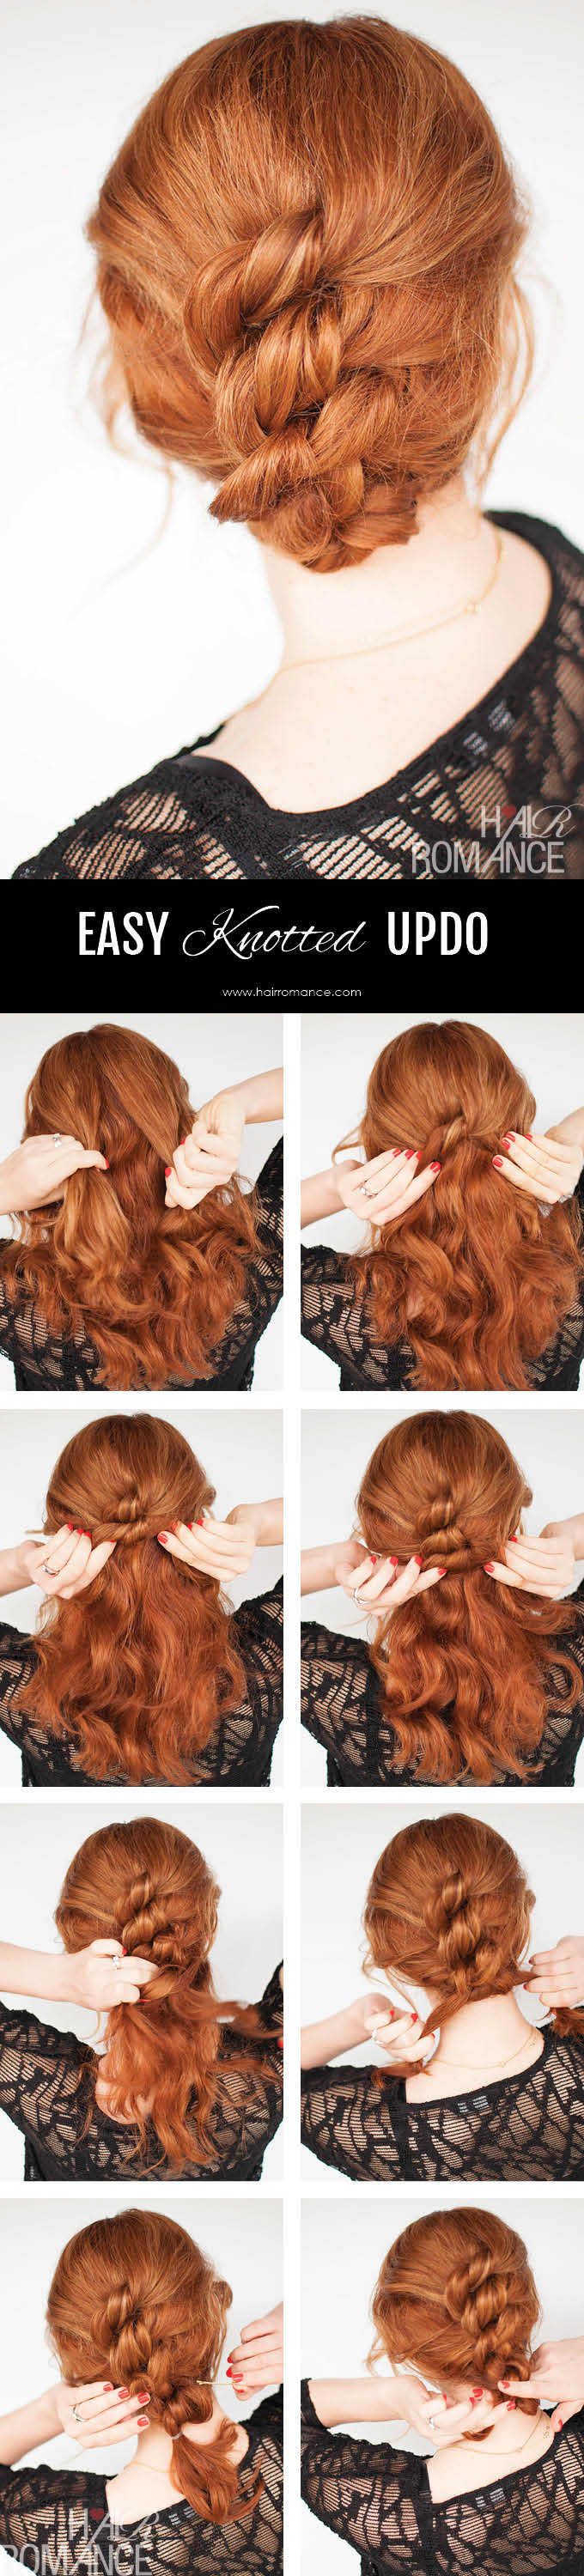 Easy Knotted Hairstyle Tutorial - Hair Romance